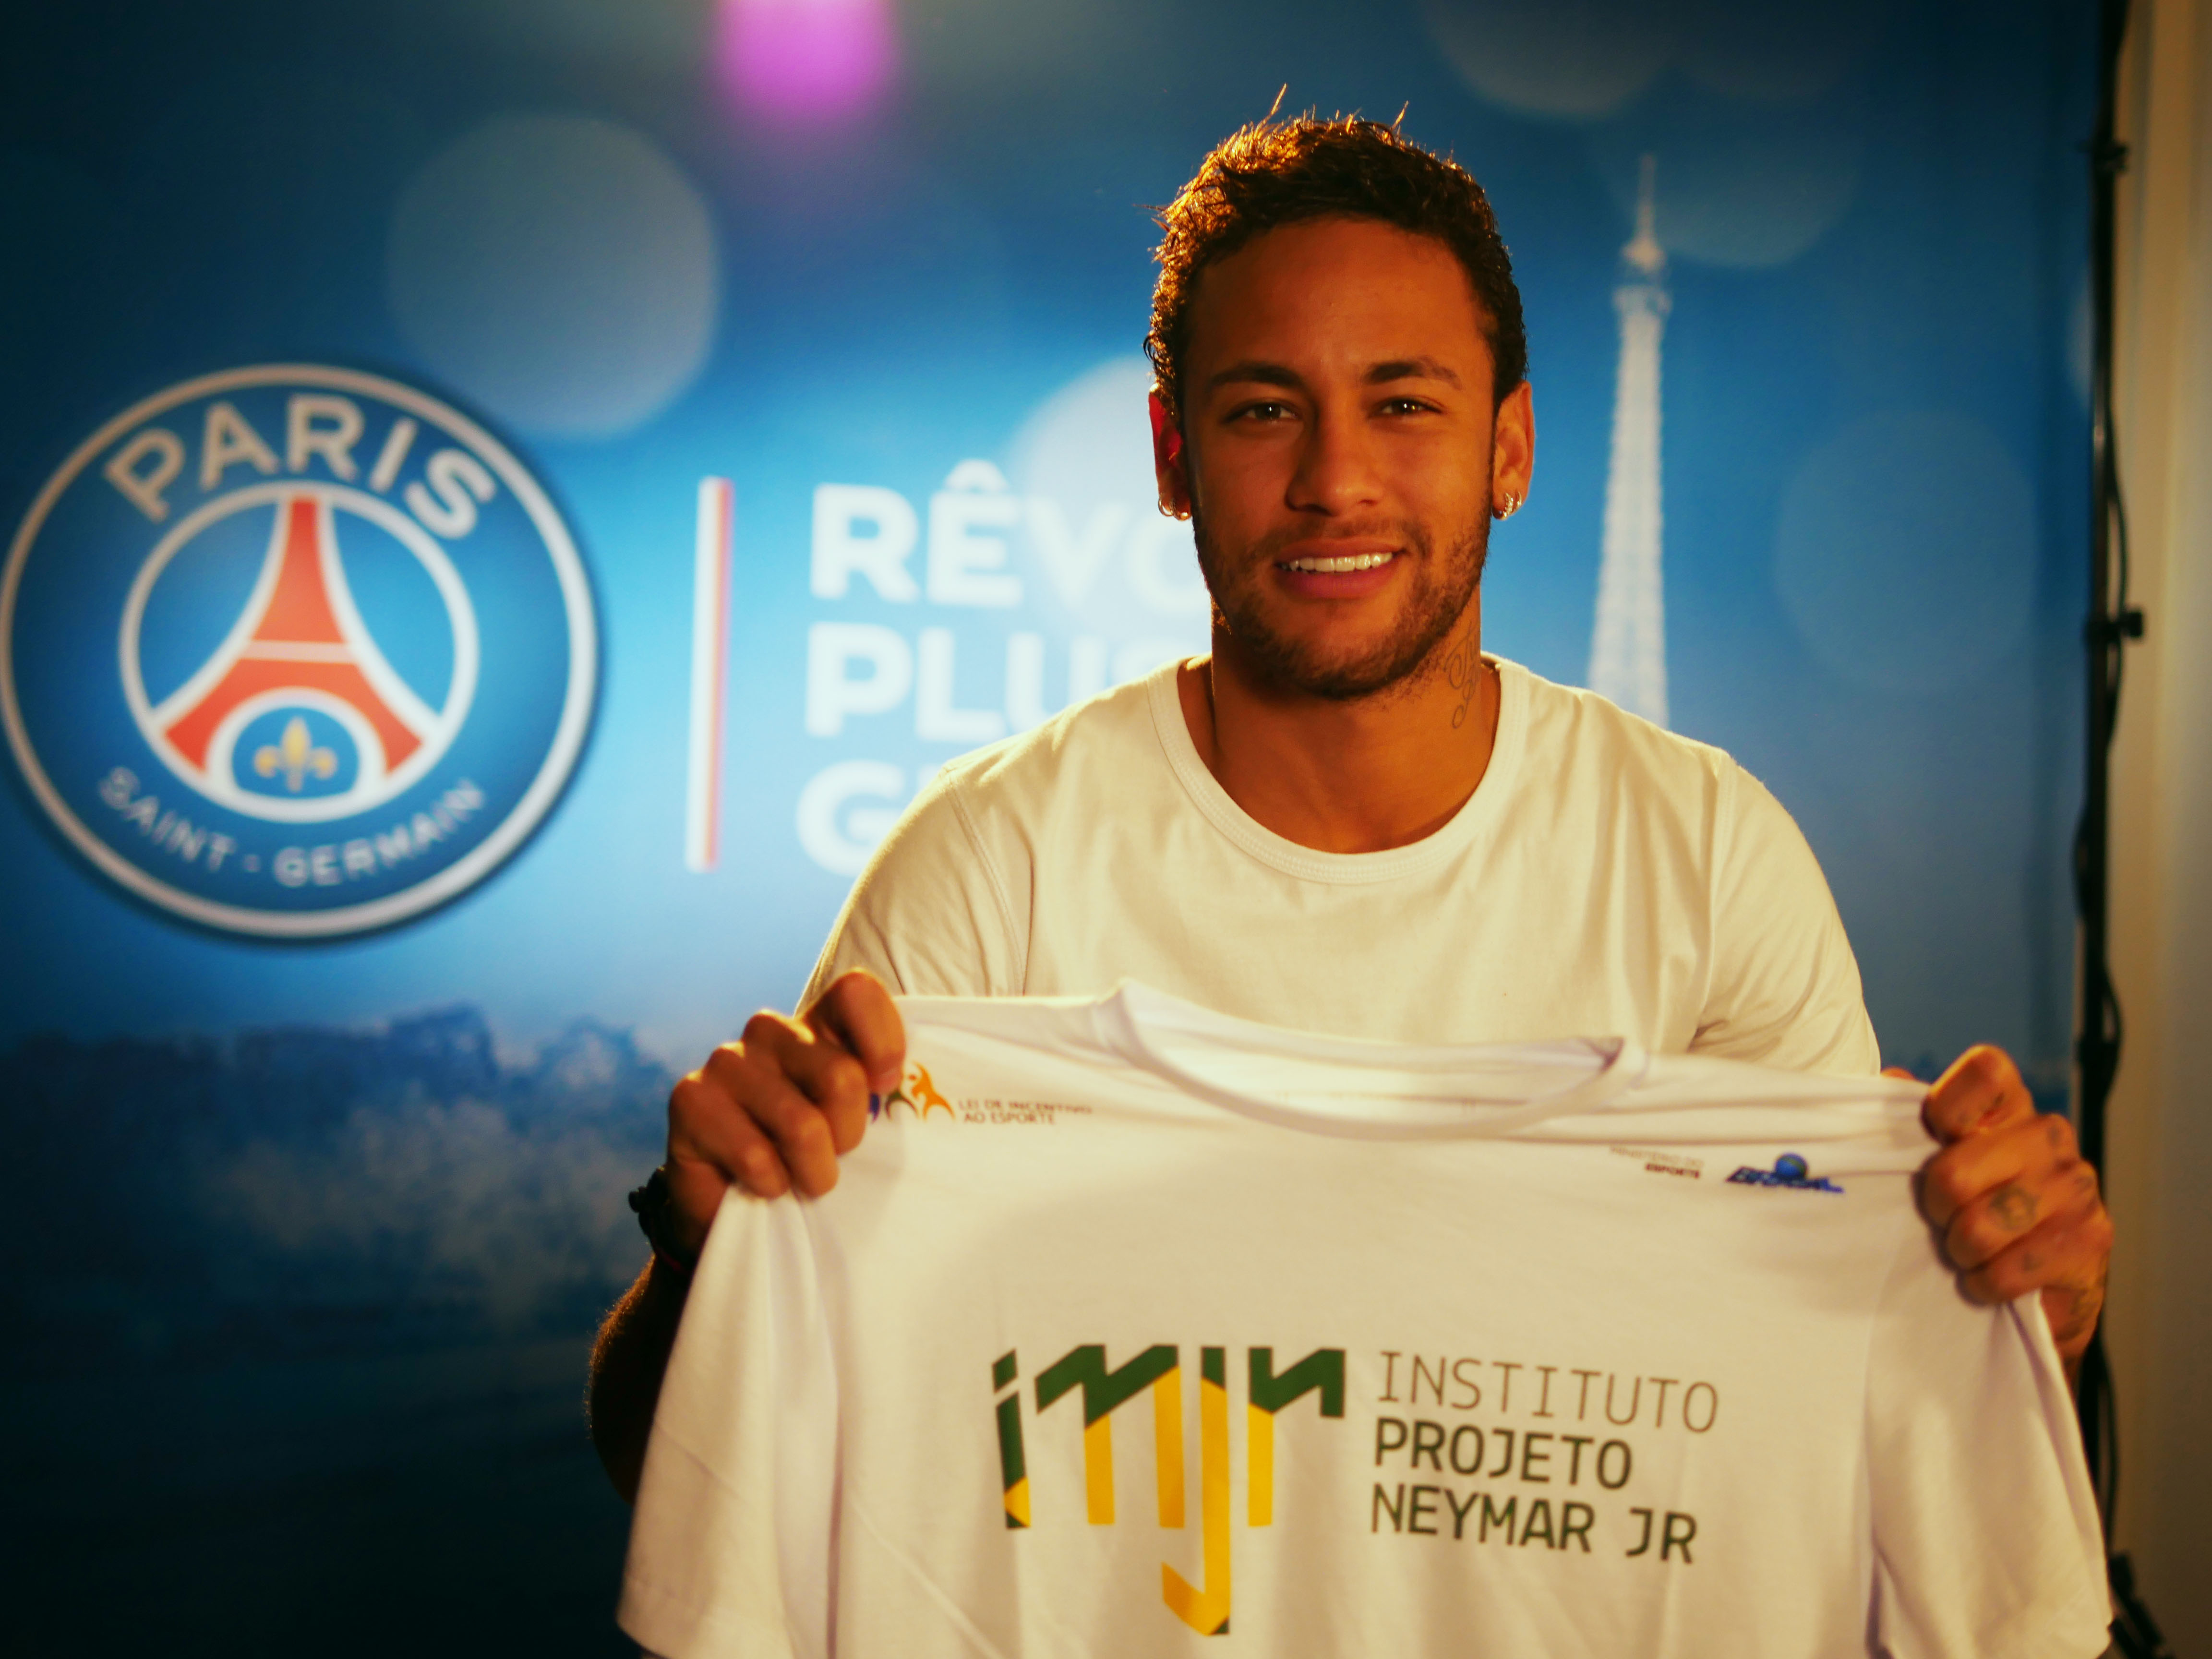 Neymar Jr. promotes secret Santa between players and children of the  Instituto Projeto Neymar Jr. 47eaf03706052